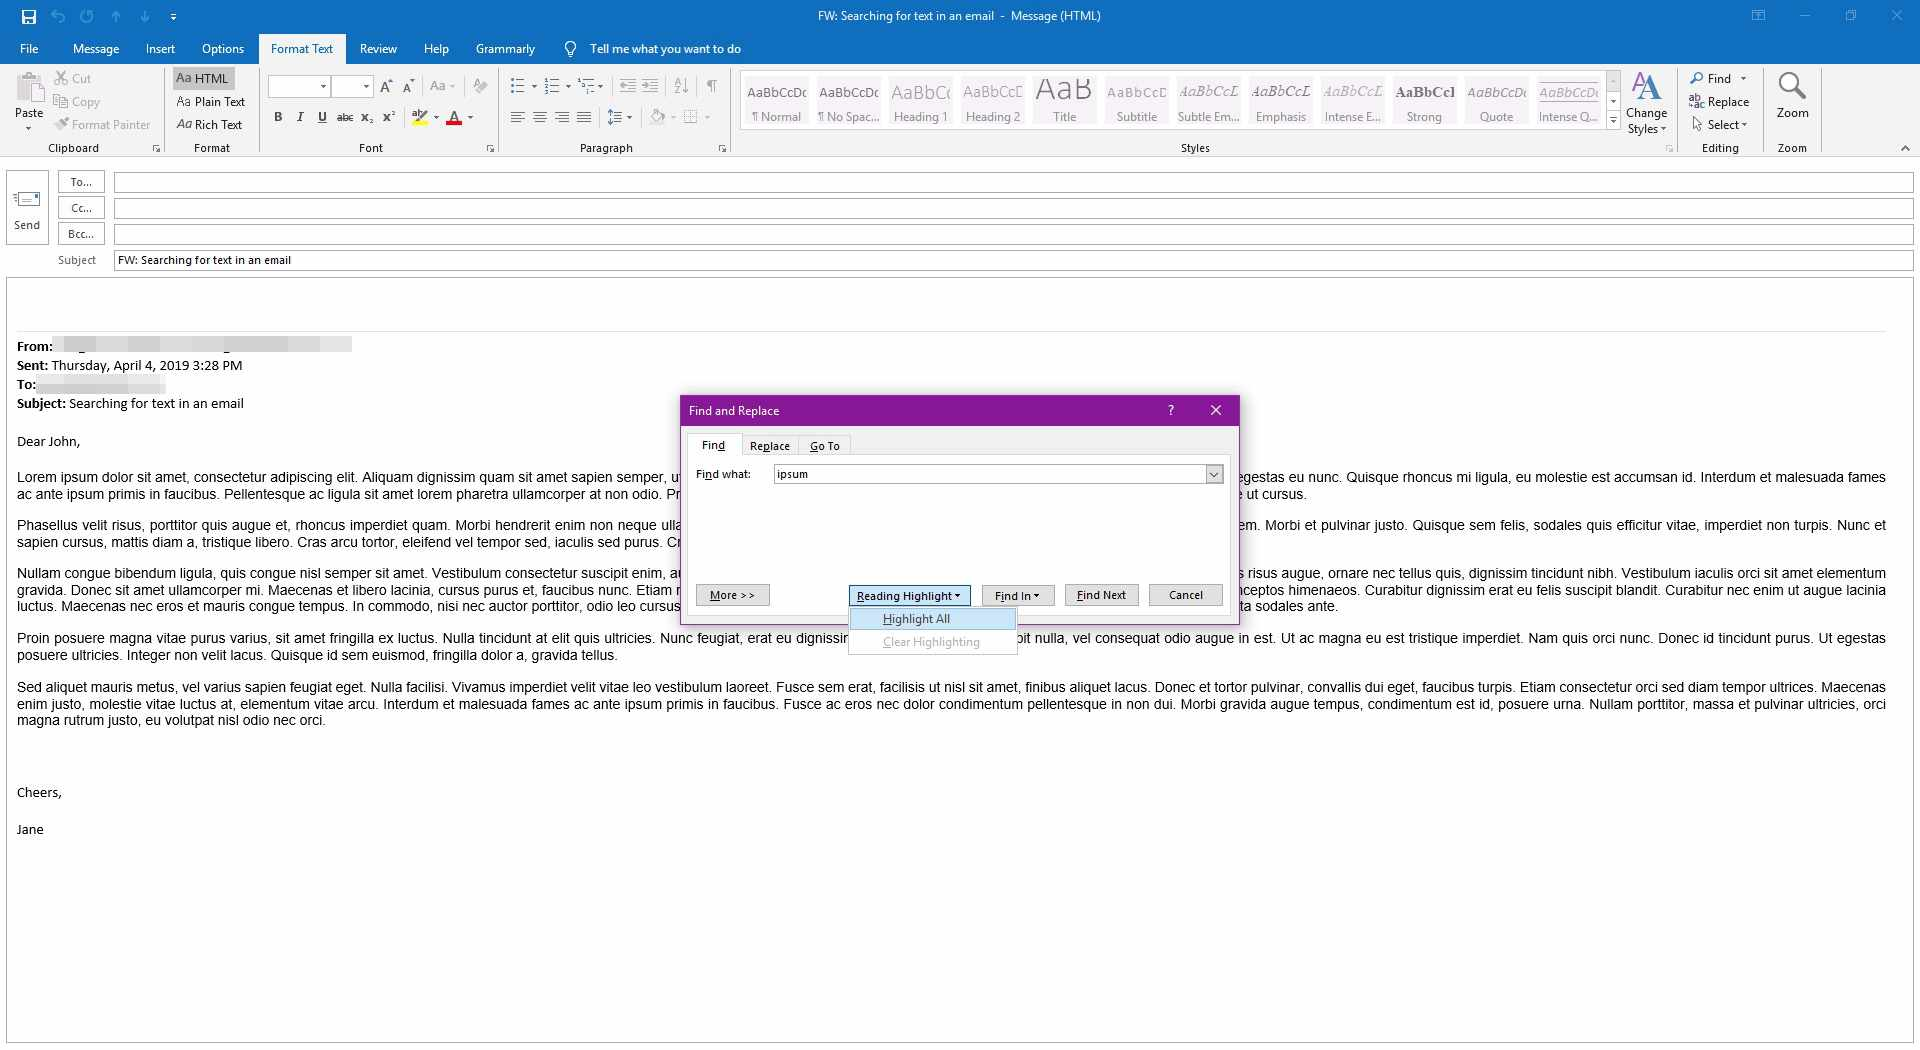 Turing on highlights for the find text command in Outlook.